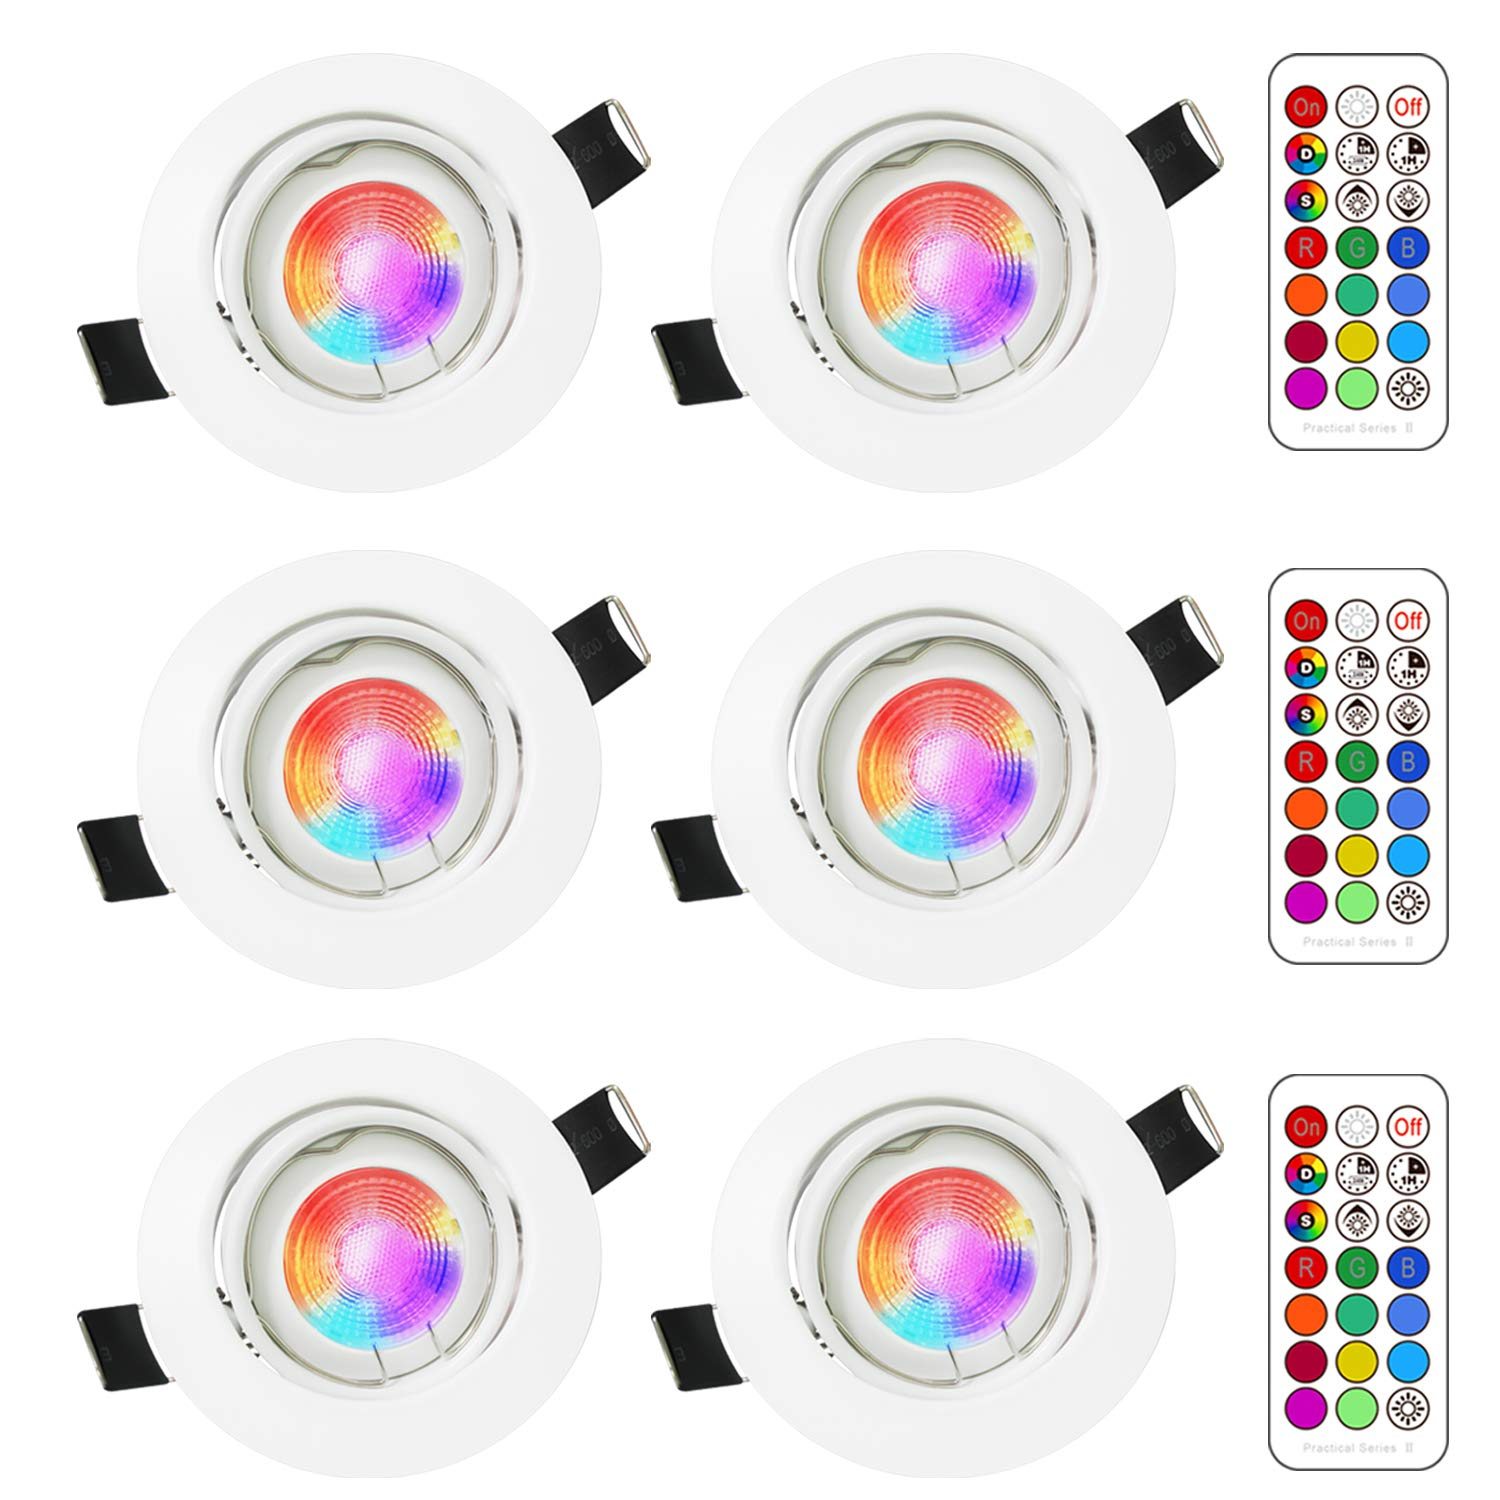 (6 Pack) RGB Led Recessed Ceiling Light, Sunpion 3W GU10 RGB Led Light Bulbs Ceiling Spotlights Coolwhite Light Lamps 6000K with Round Shell for Living Room Light, Kitchen Downlights